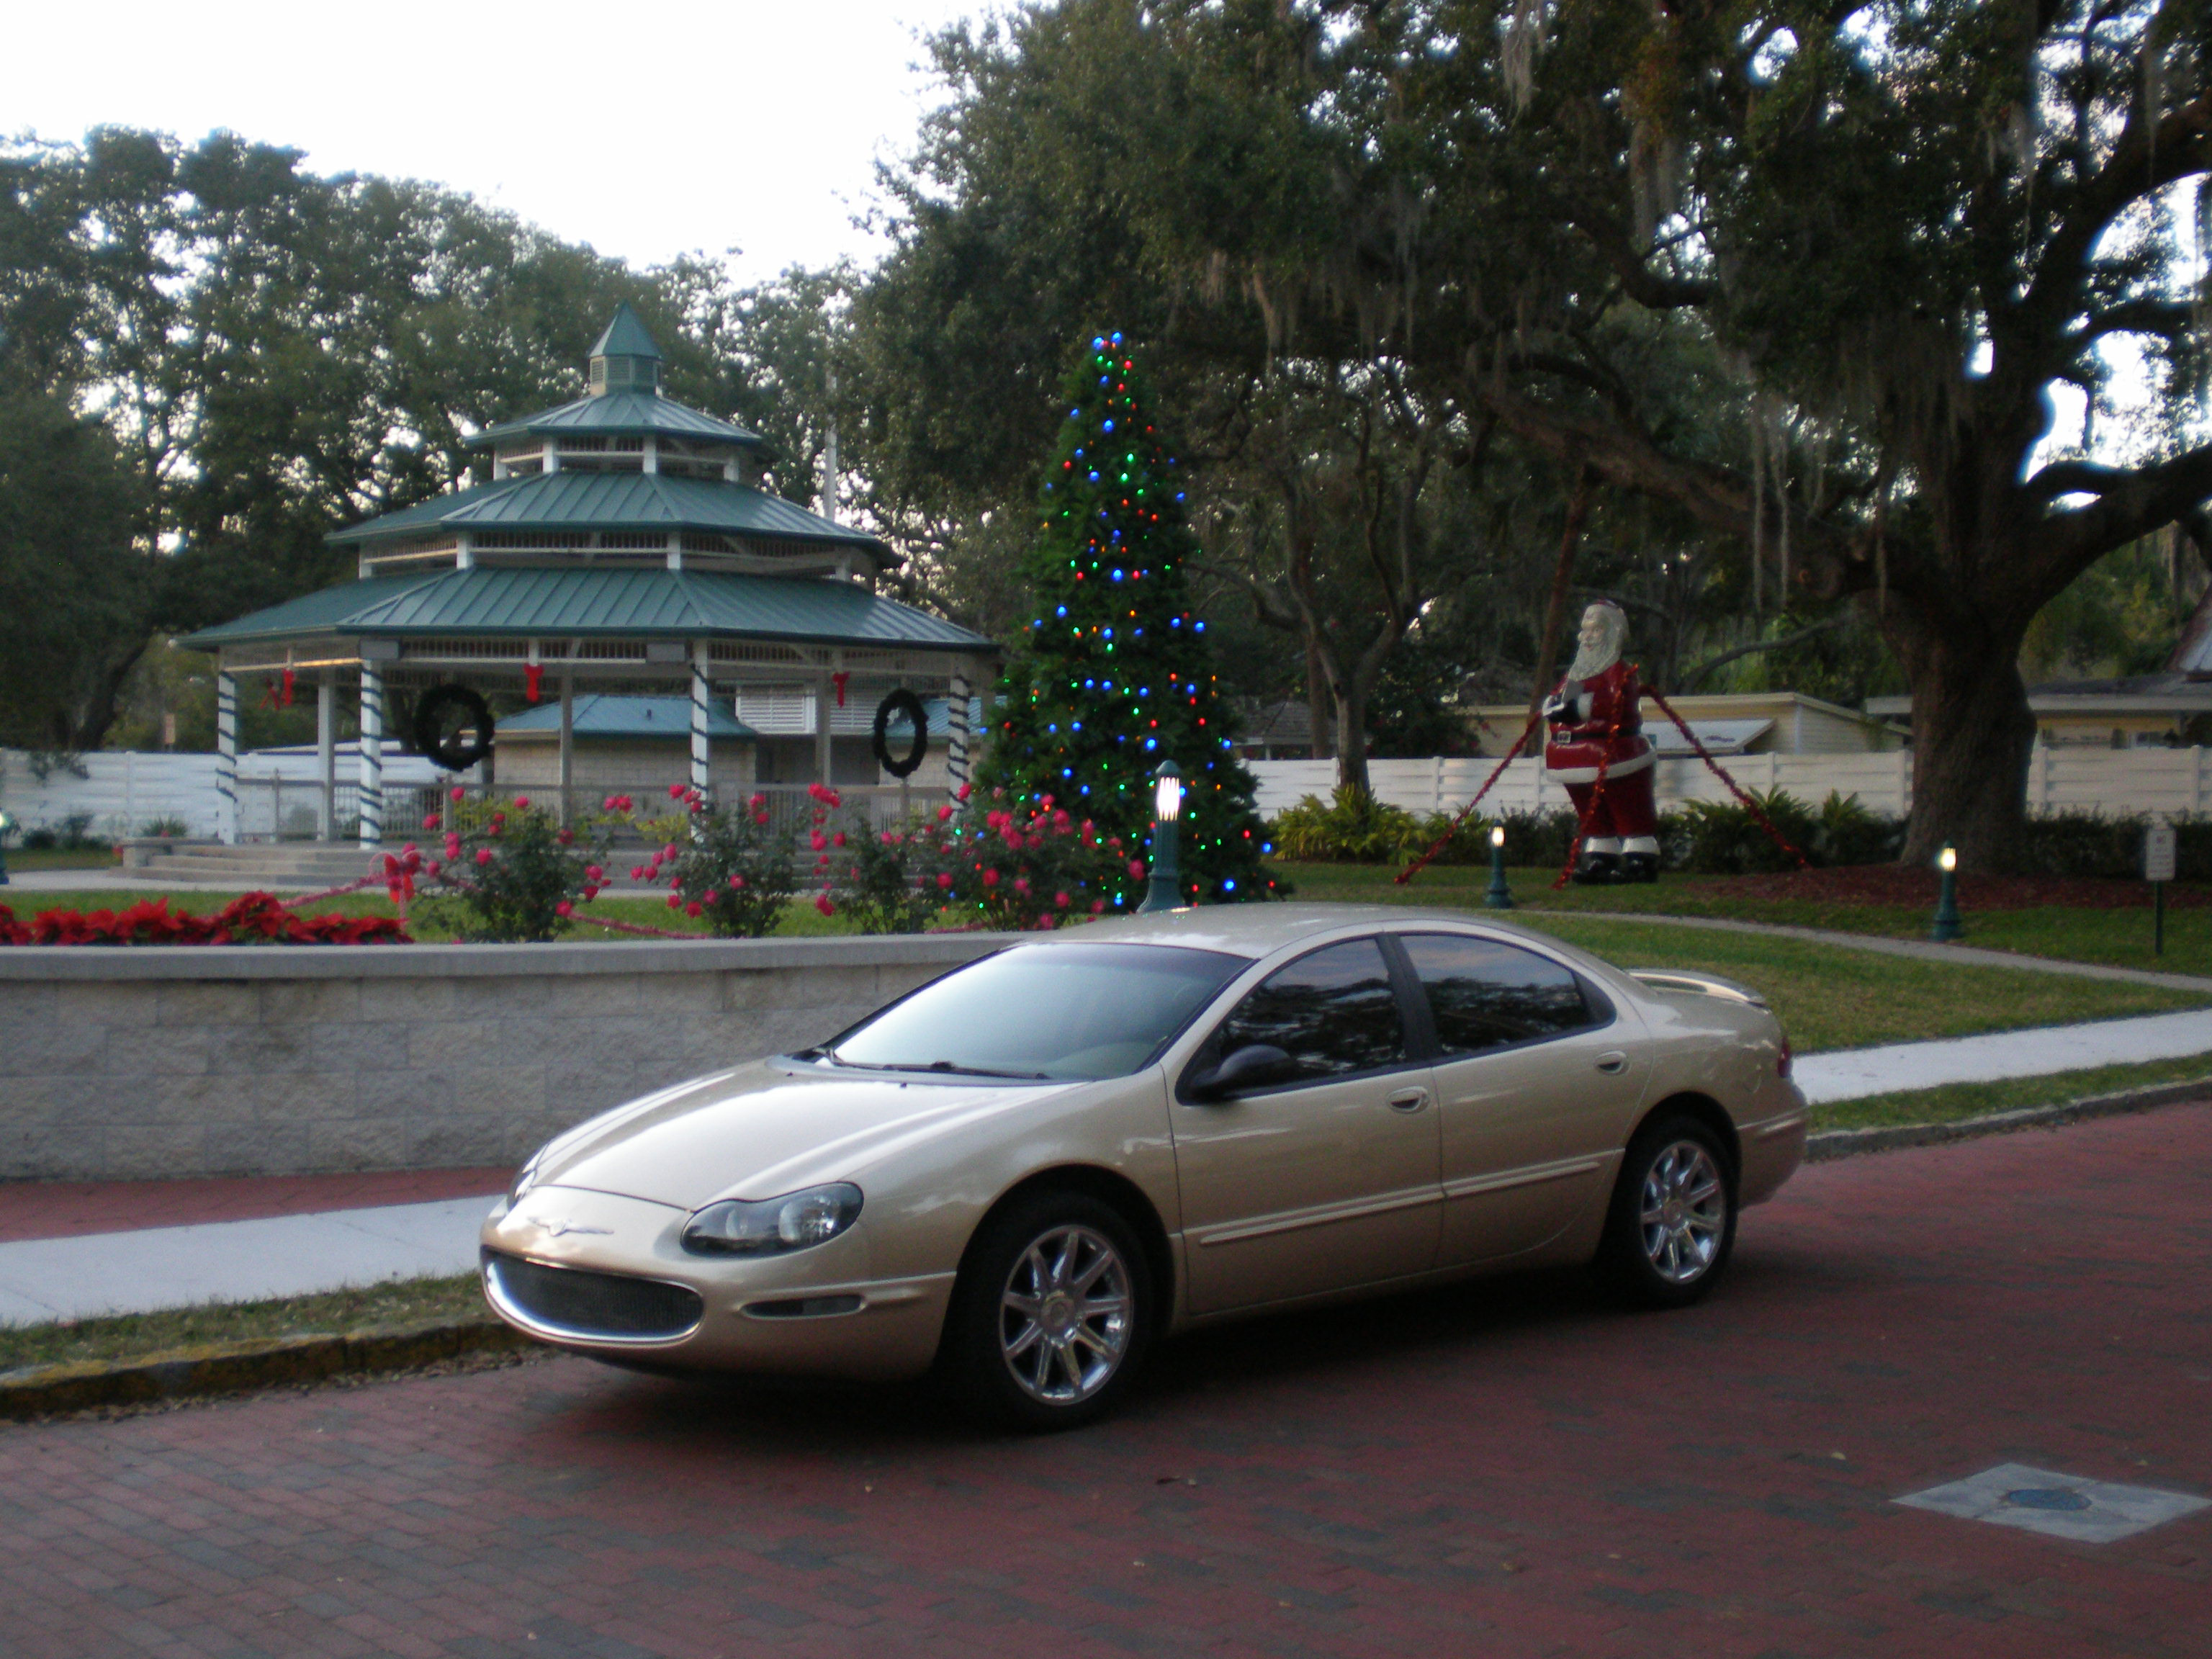 i275westflorida 39 s 1998 chrysler concorde in clearwater fl. Cars Review. Best American Auto & Cars Review